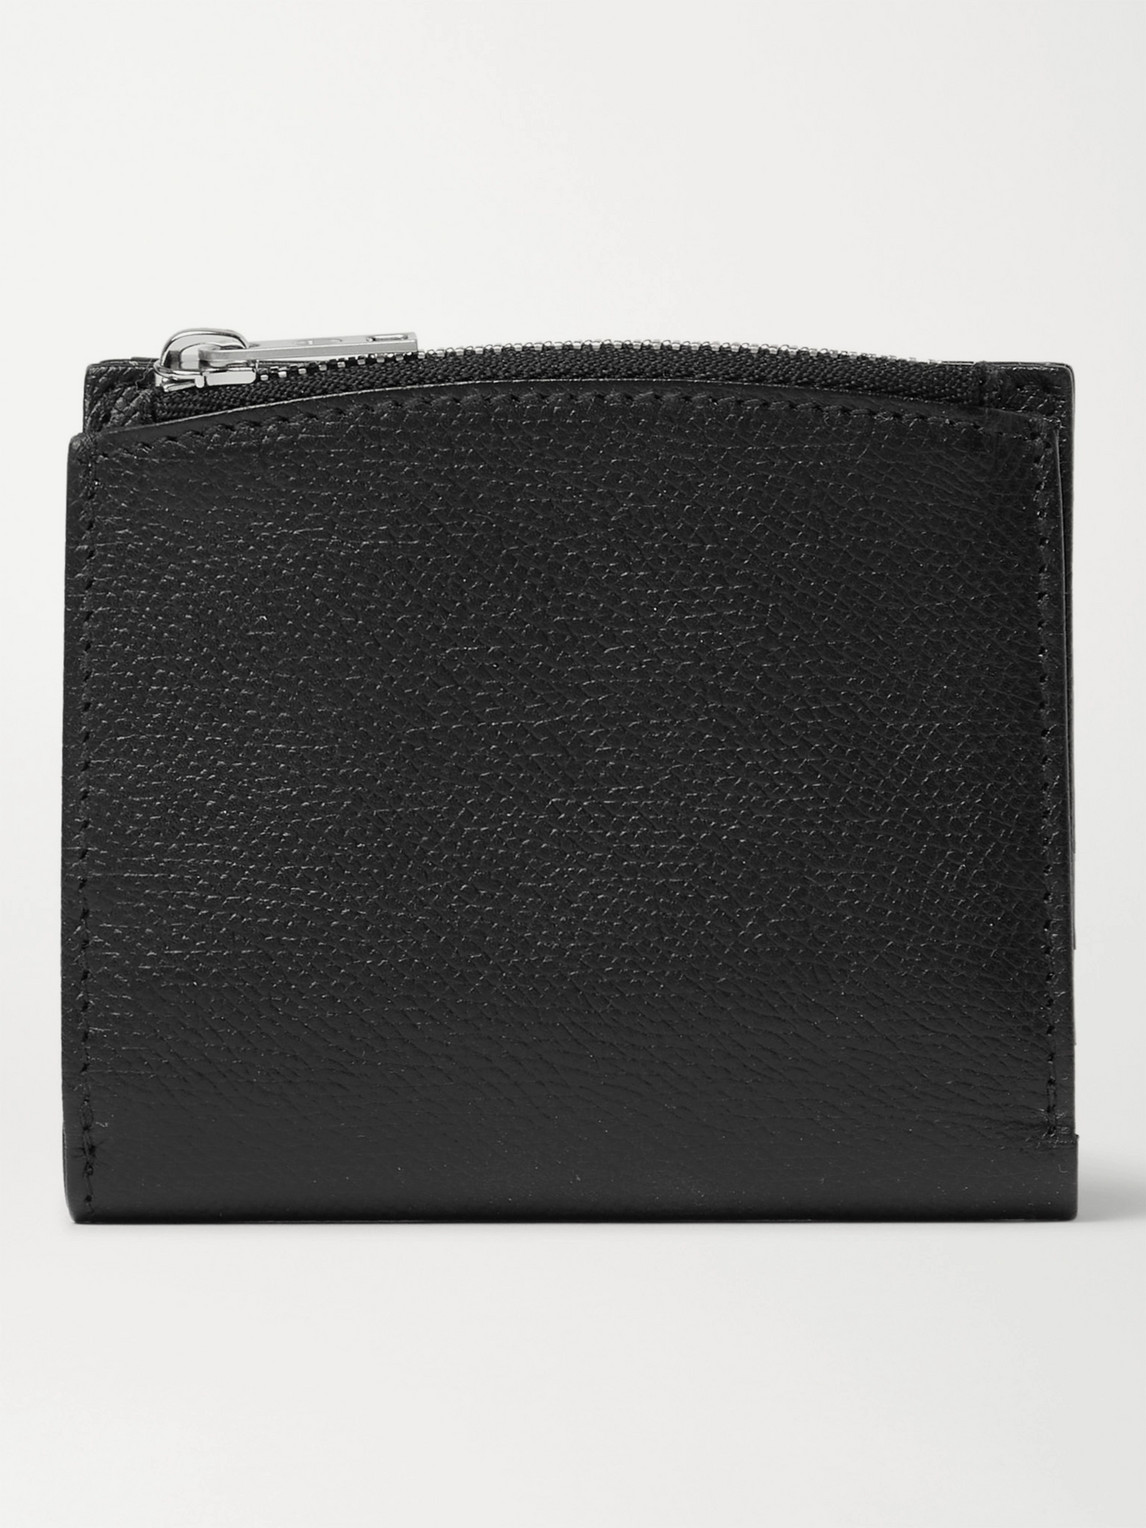 Maison Margiela Embroidered Full-grain Leather Wallet In Black